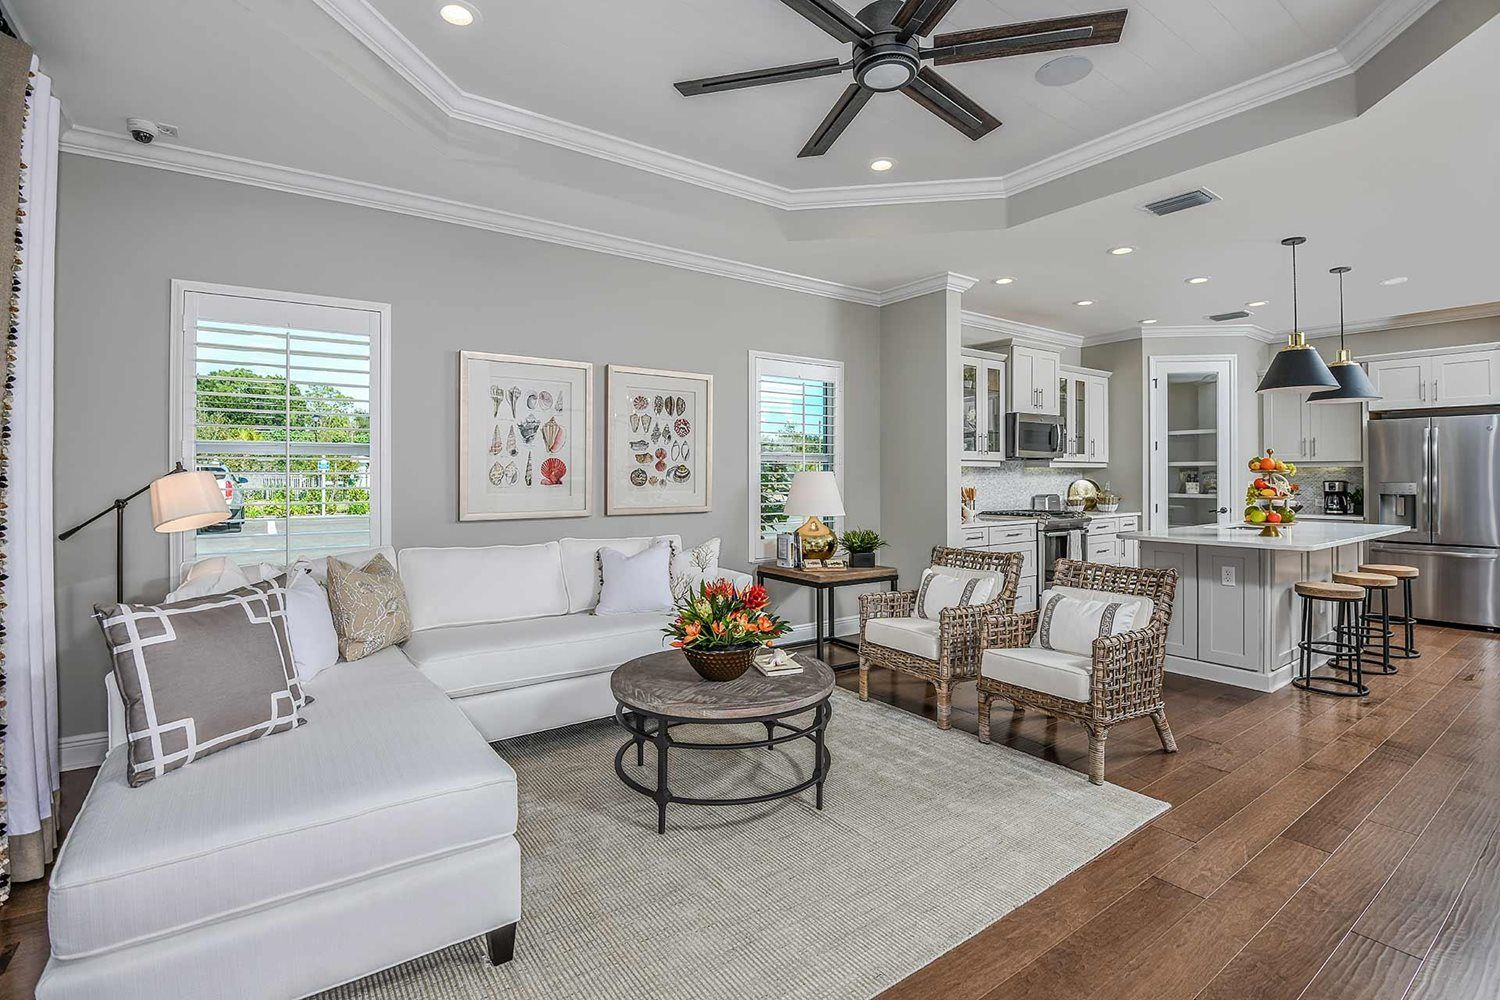 Living Area featured in the Tidewinds By Neal Communities in Fort Myers, FL